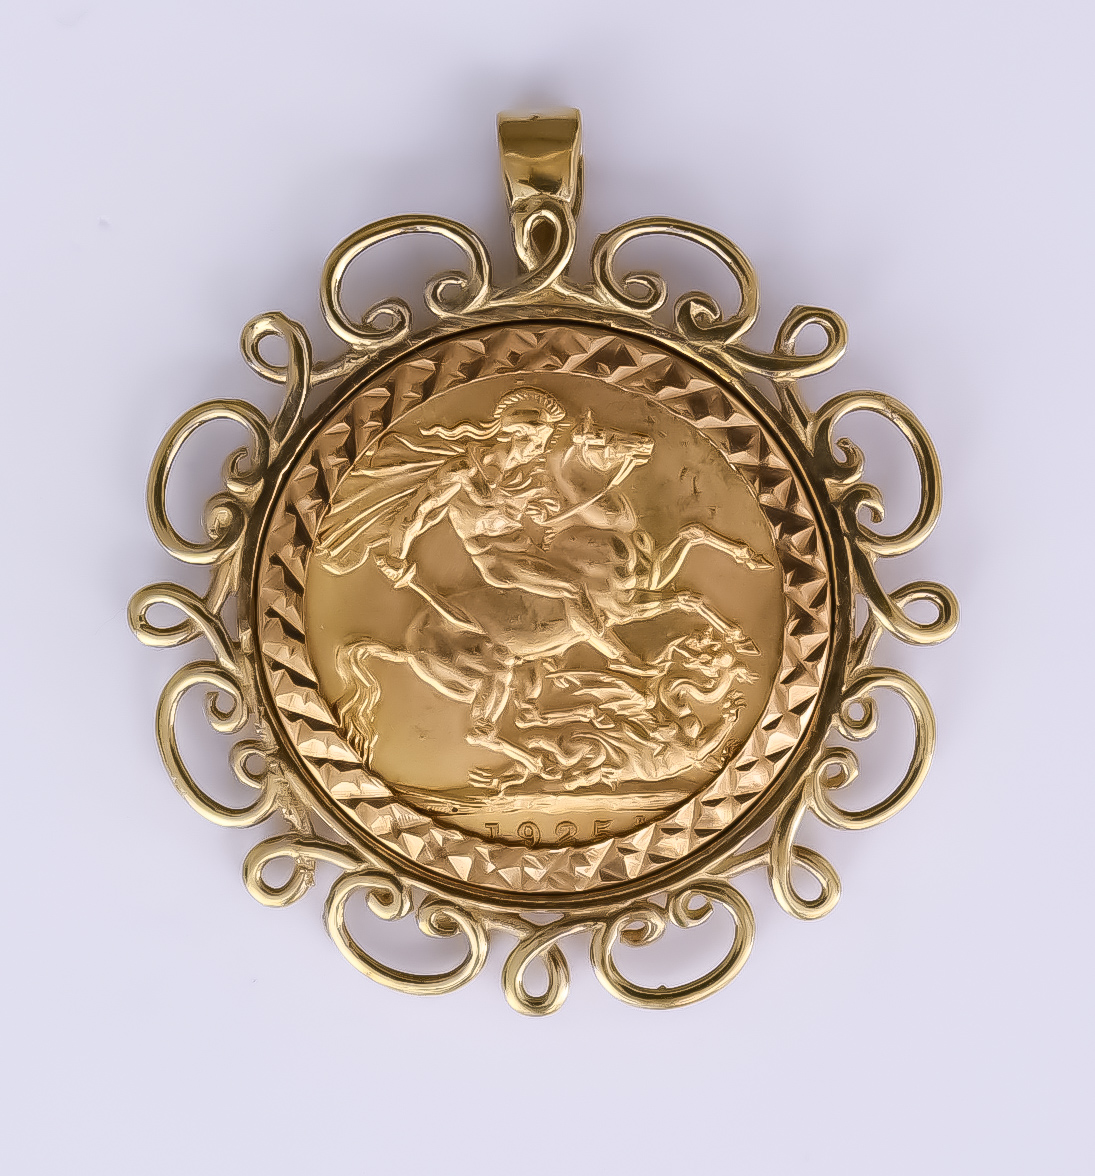 A George V 1925 Sovereign in fancy 9ct gold mount, gross weight 12.3g